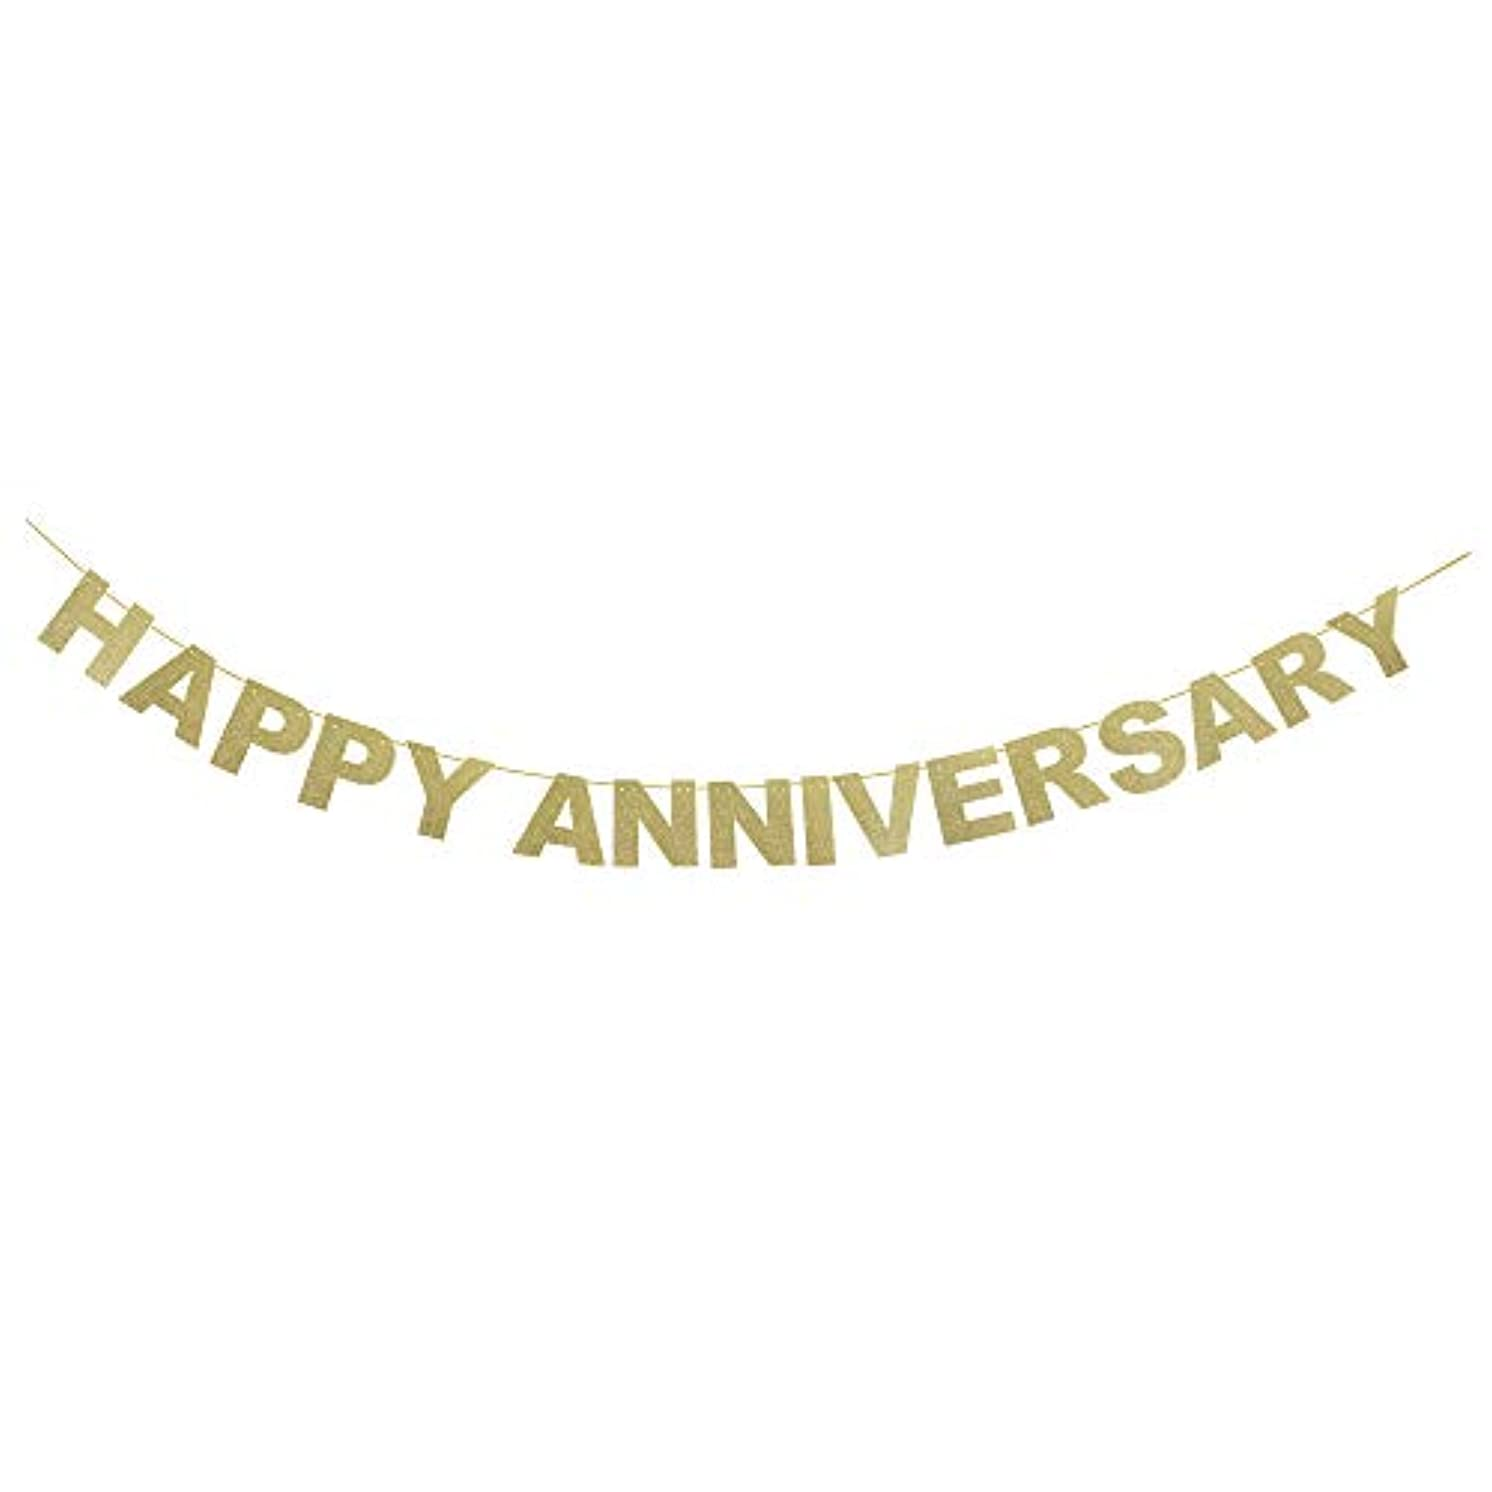 Happy Anniversary Silver Glitter Banner - Wedding Anniversary Party Bunting (Gold)